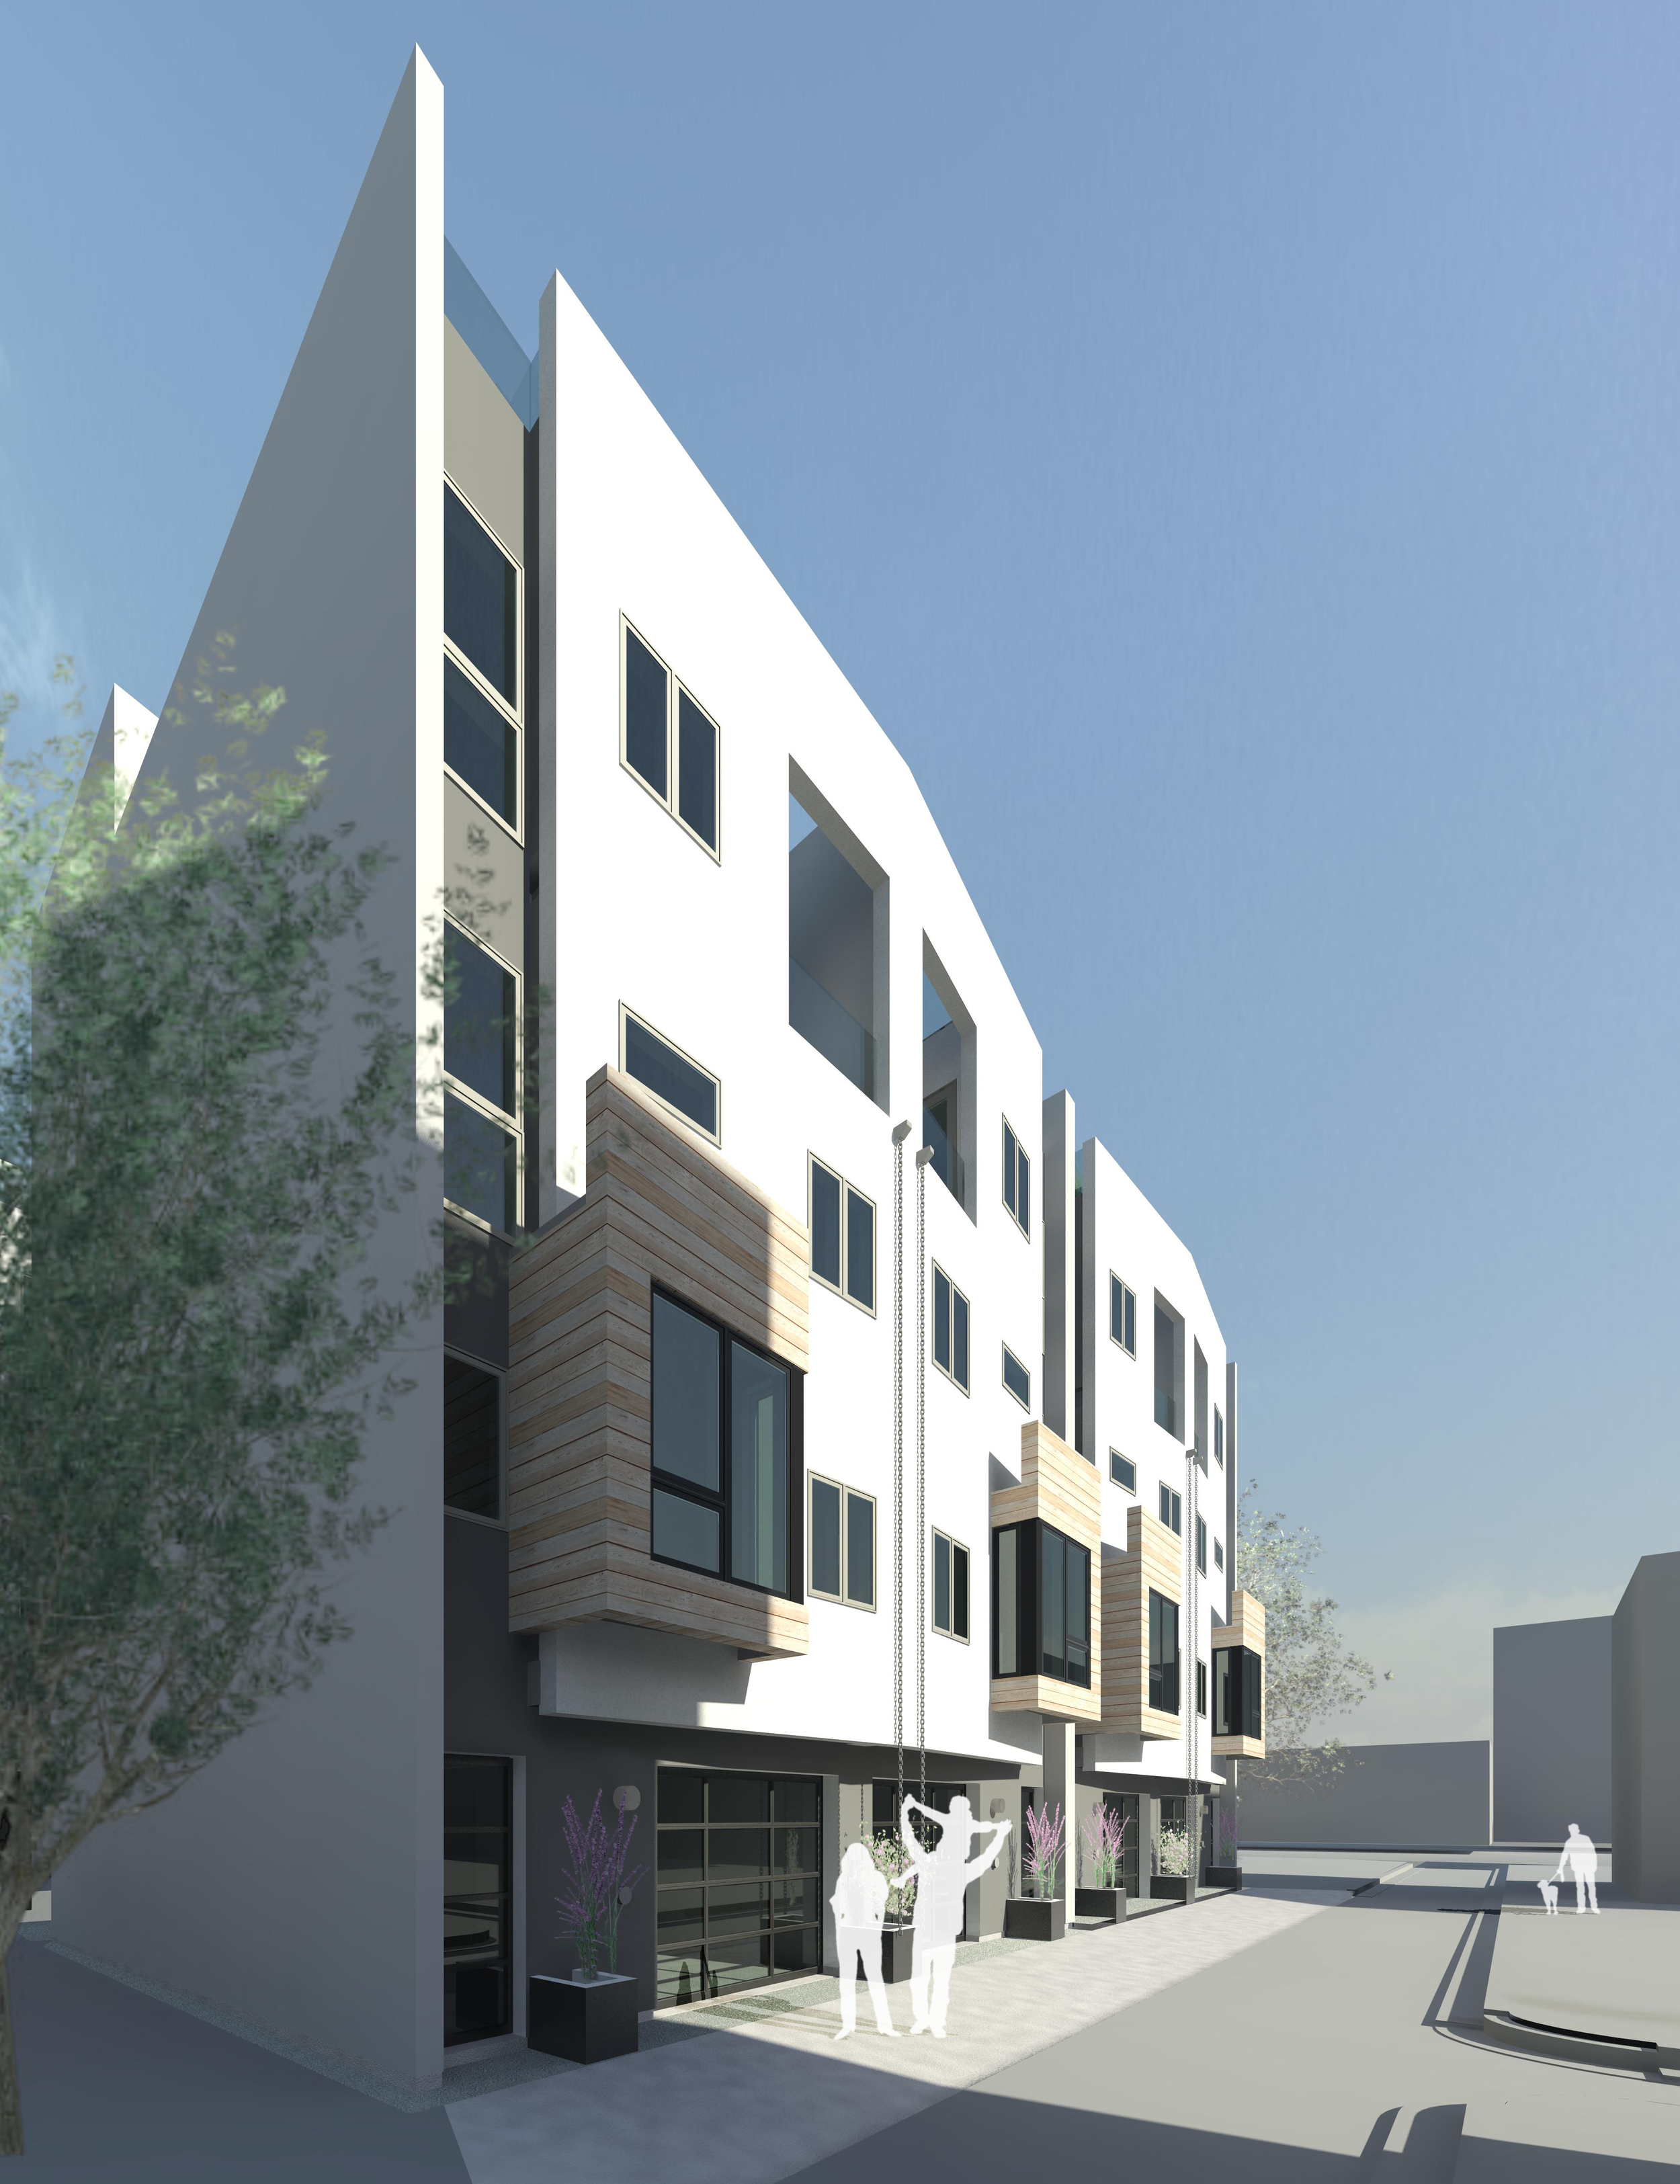 13-0127_Townhouse View from Northwest.jpg